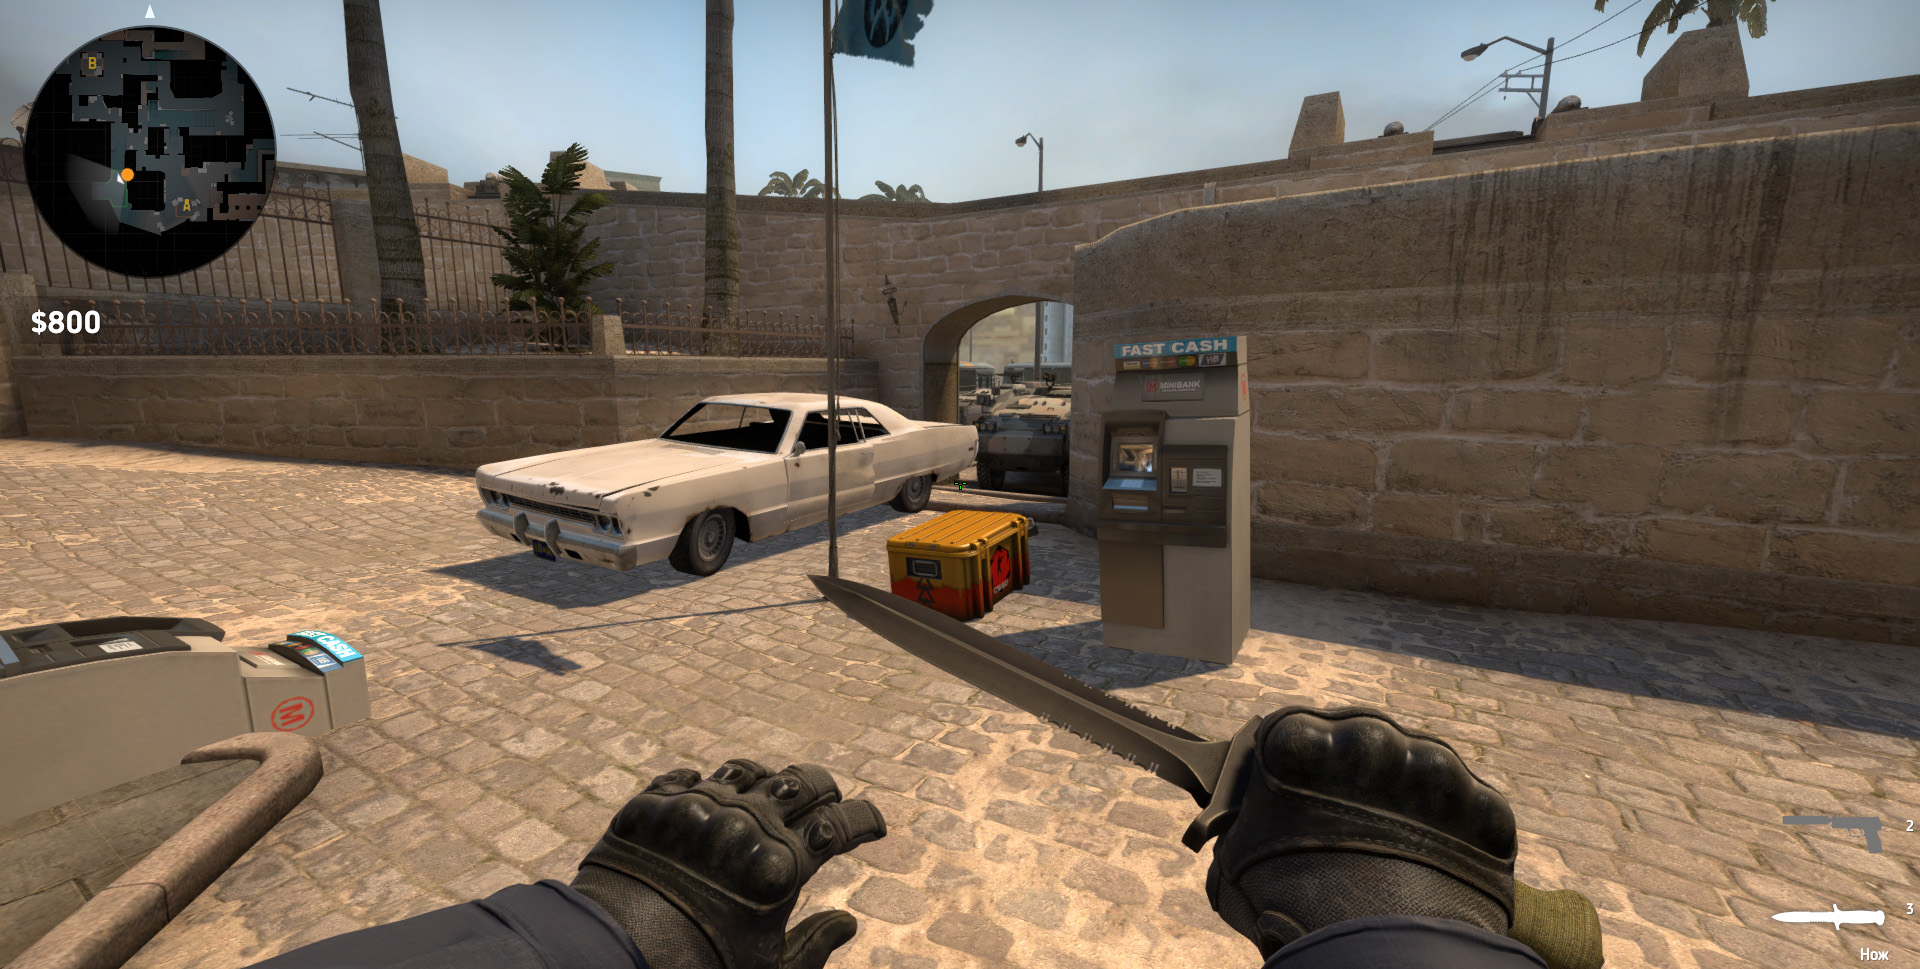 How to give out items in CS:GO - spawn a car, a chicken, etc.